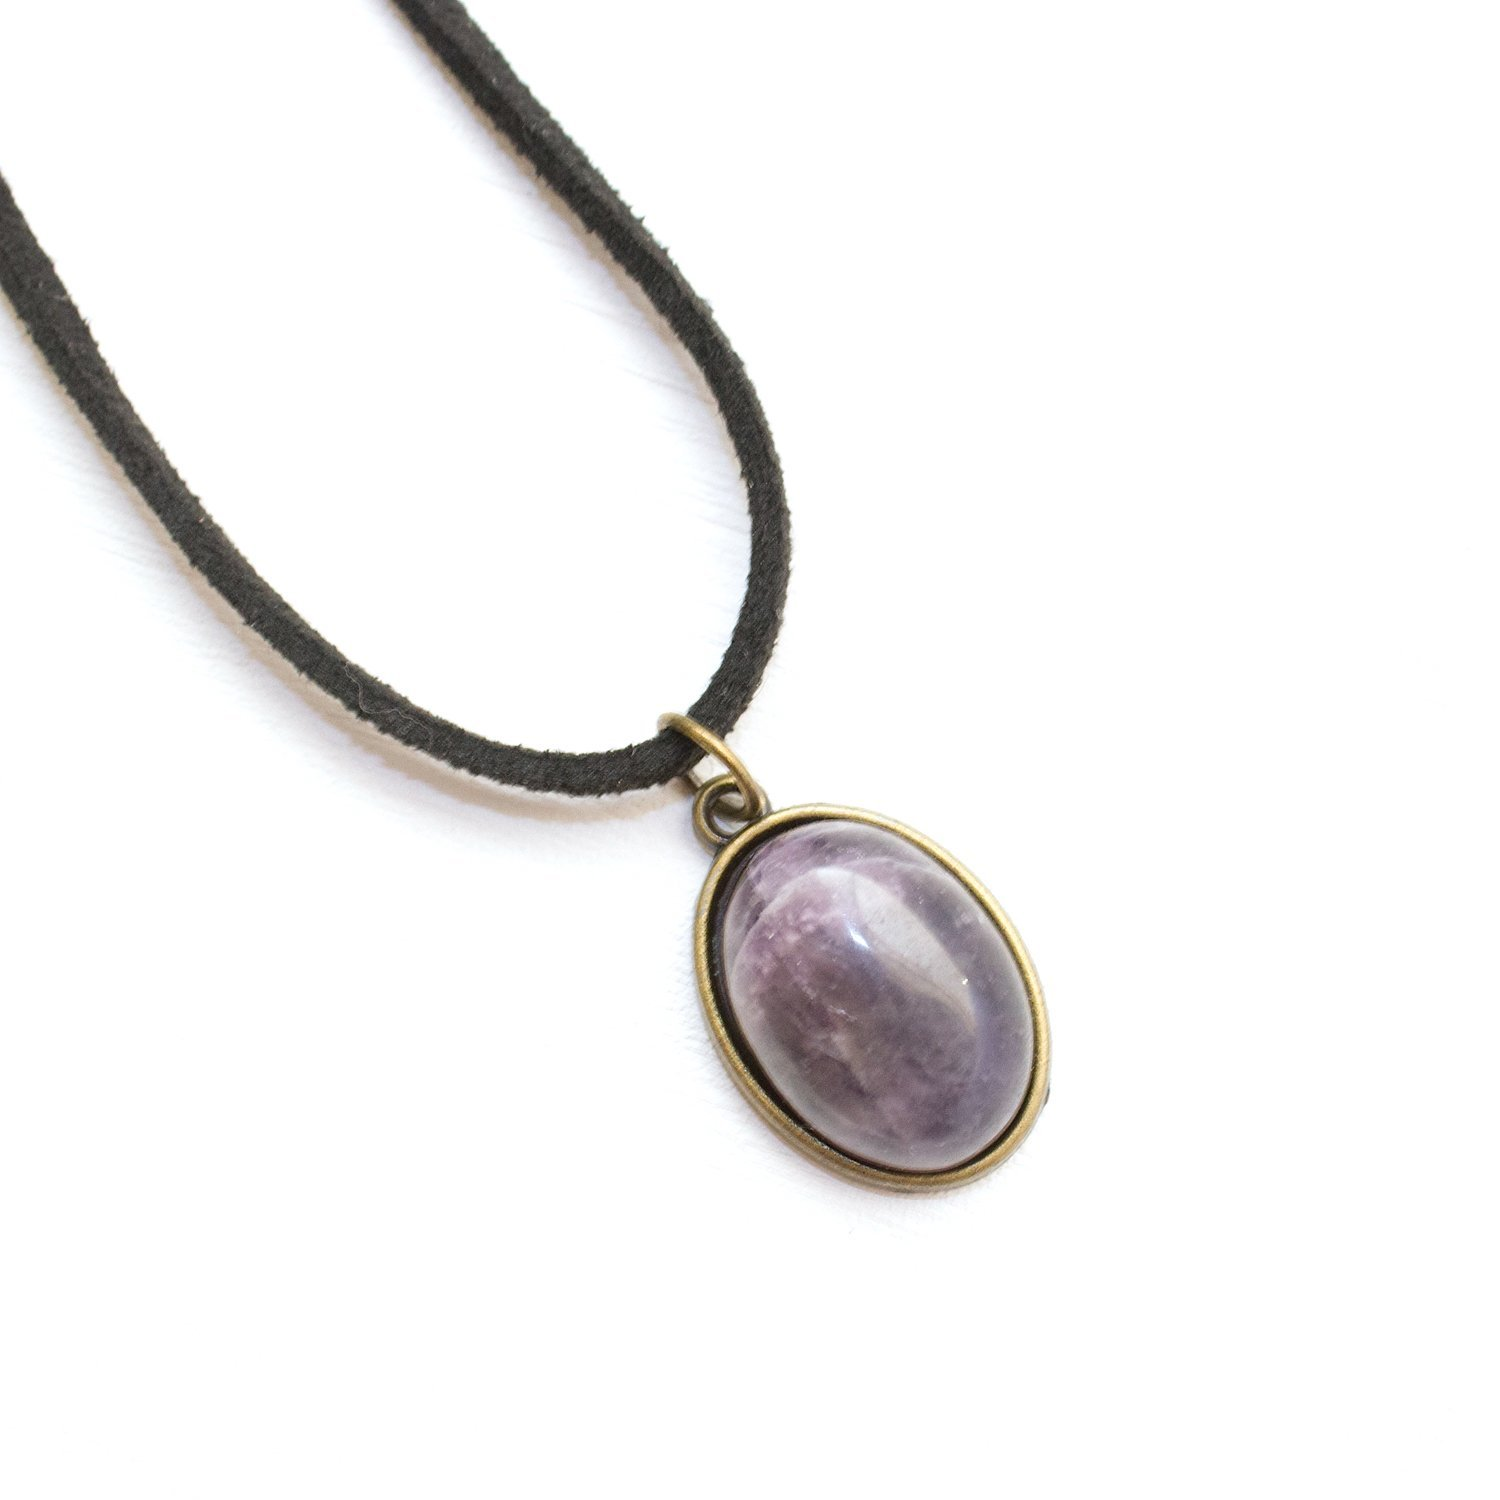 Black Vegan Leather Suede Choker Amethyst Choker Necklace High Quality Amethyst Gemstone Jewelry Handmade in the US